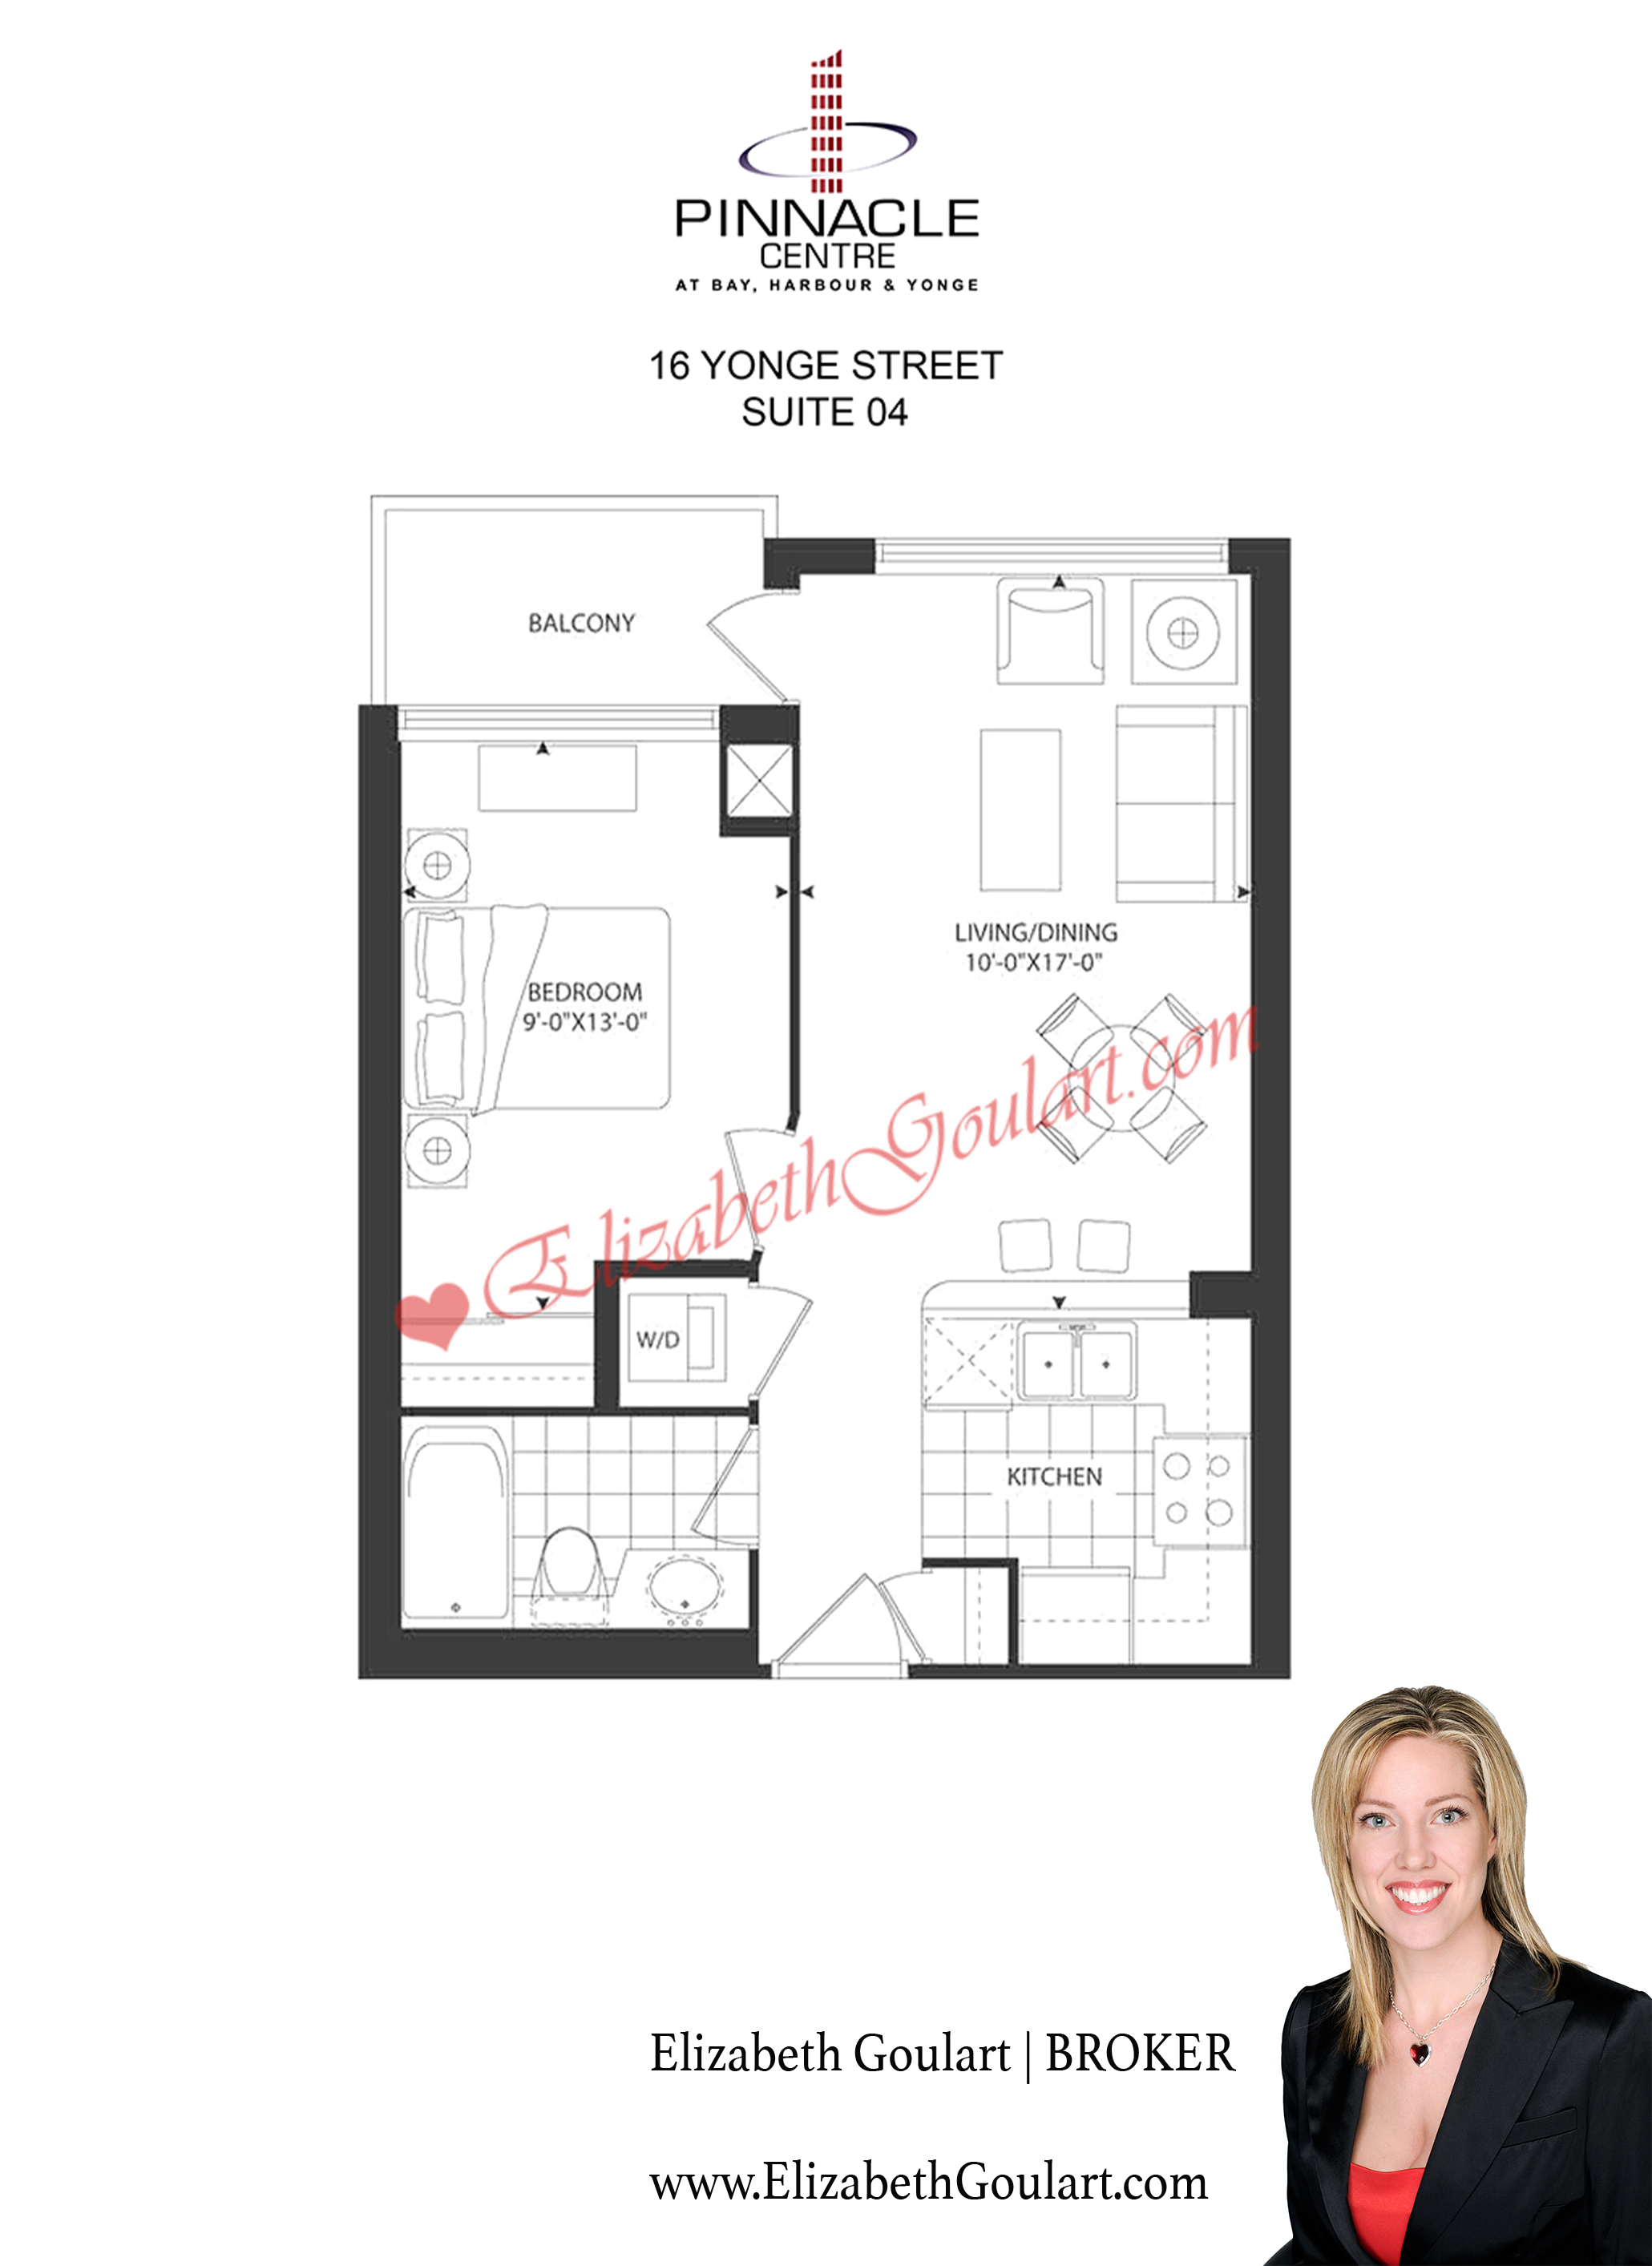 16 yonge street pinnacle centre condos floor plans